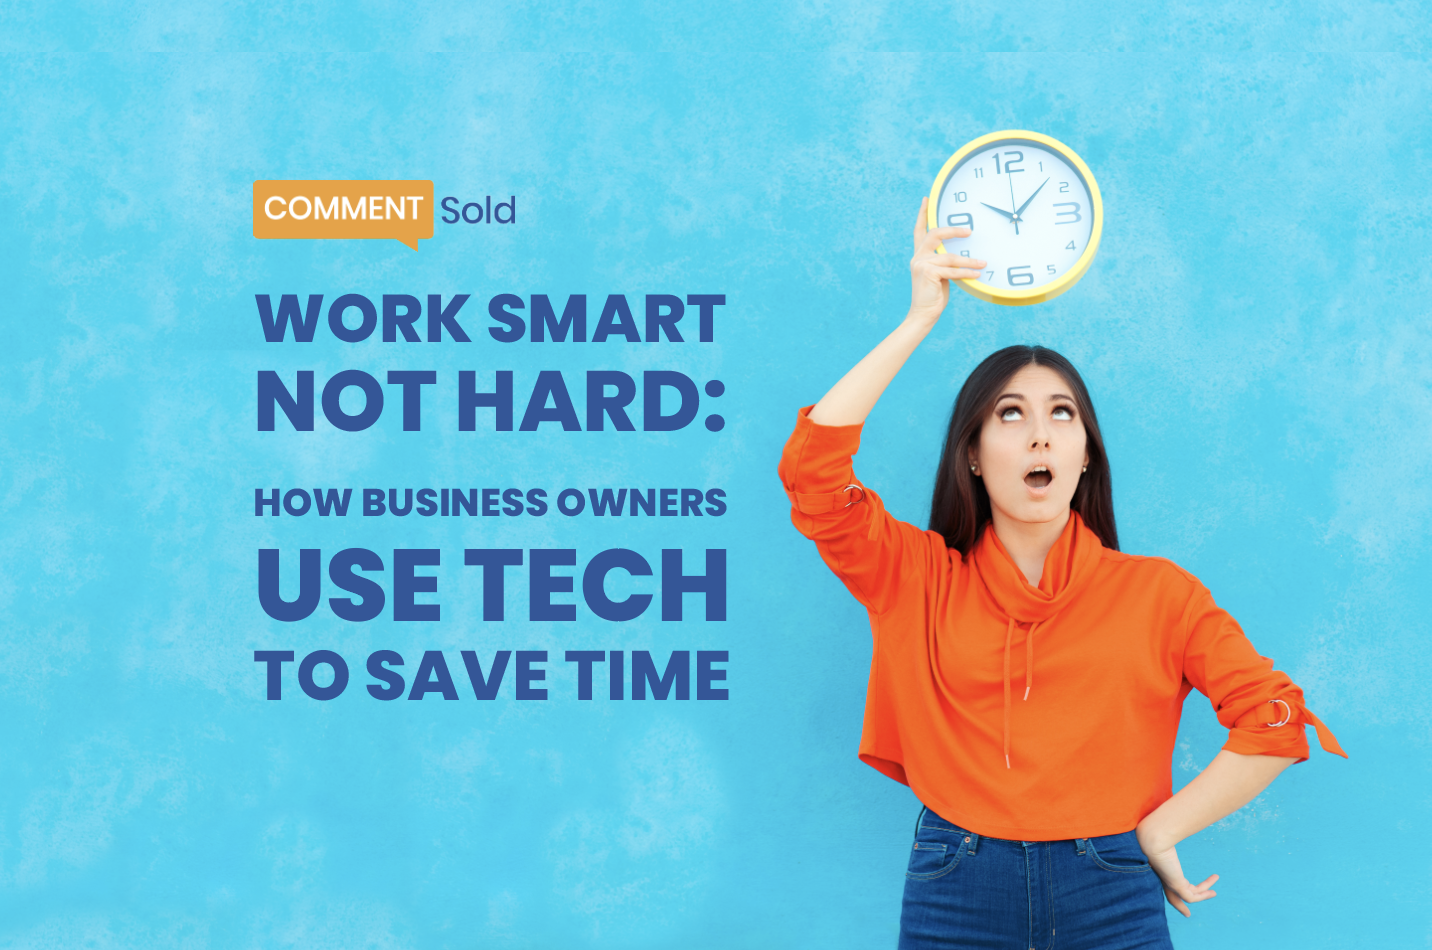 Work Smart Not Hard: How Business Owners Use Tech to Save Time